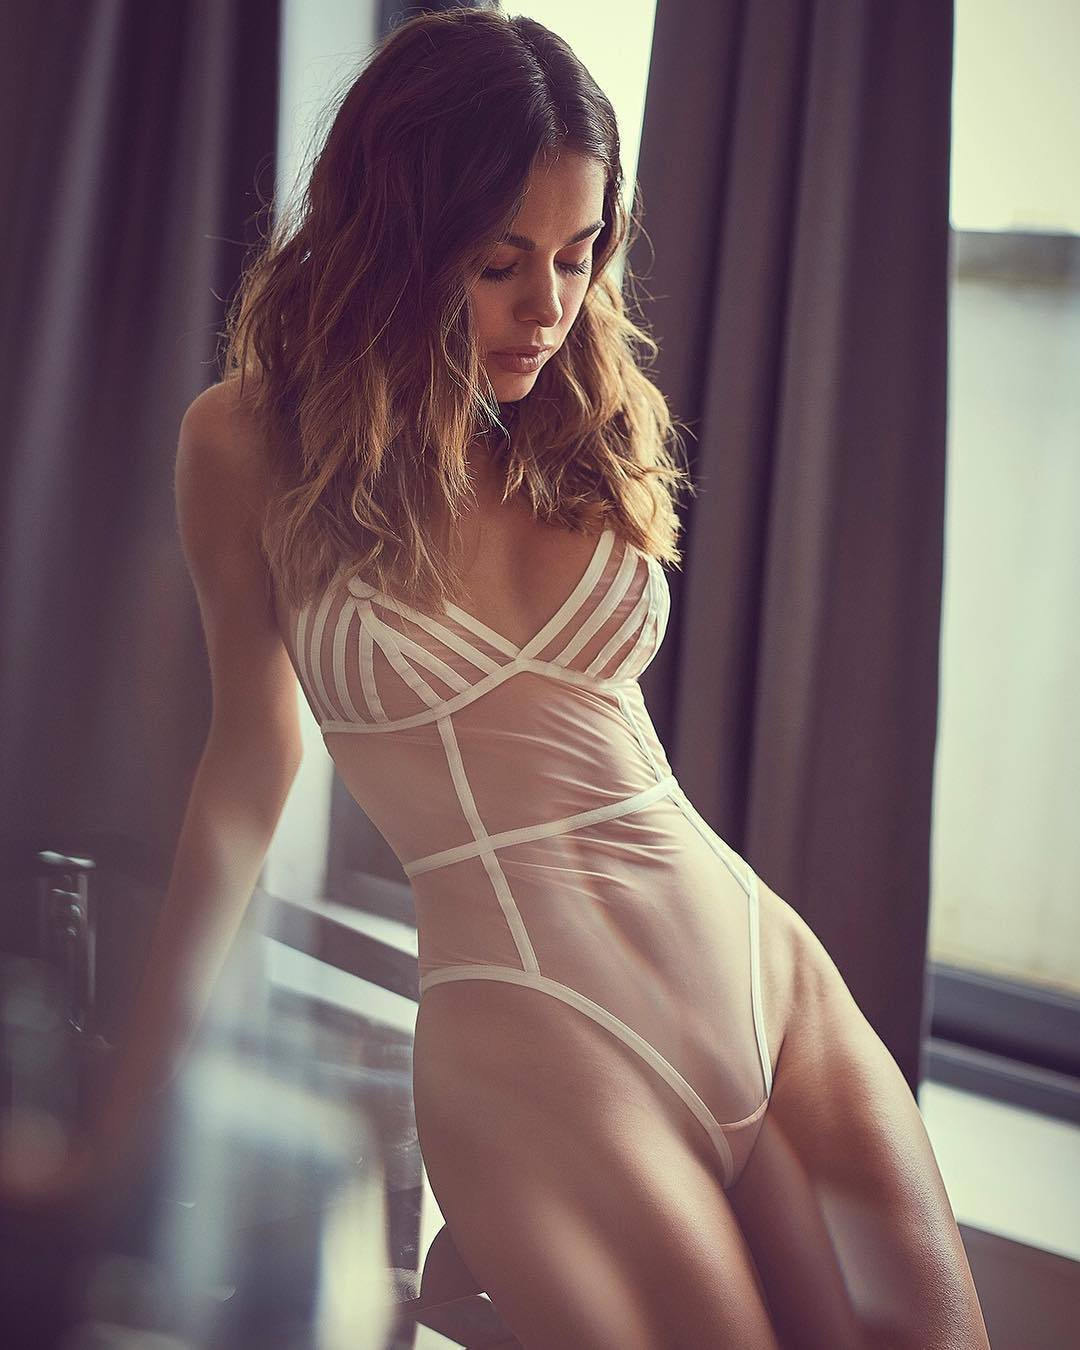 cool mood girl wearing see through lingerie